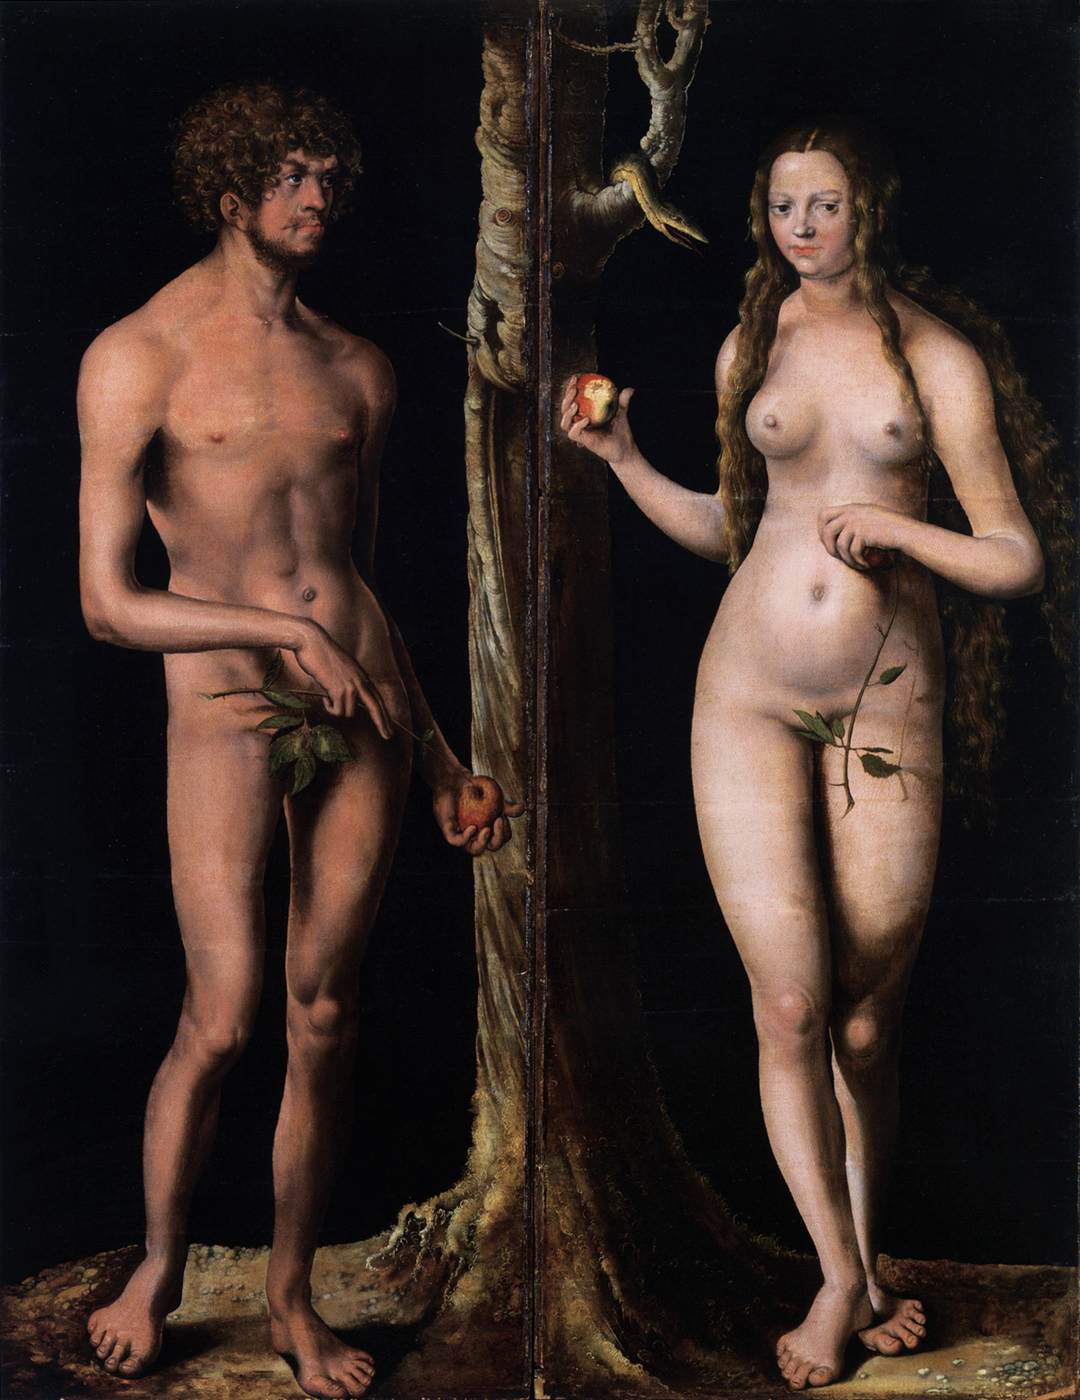 Eve Nude web gallery of art, searchable fine arts image database